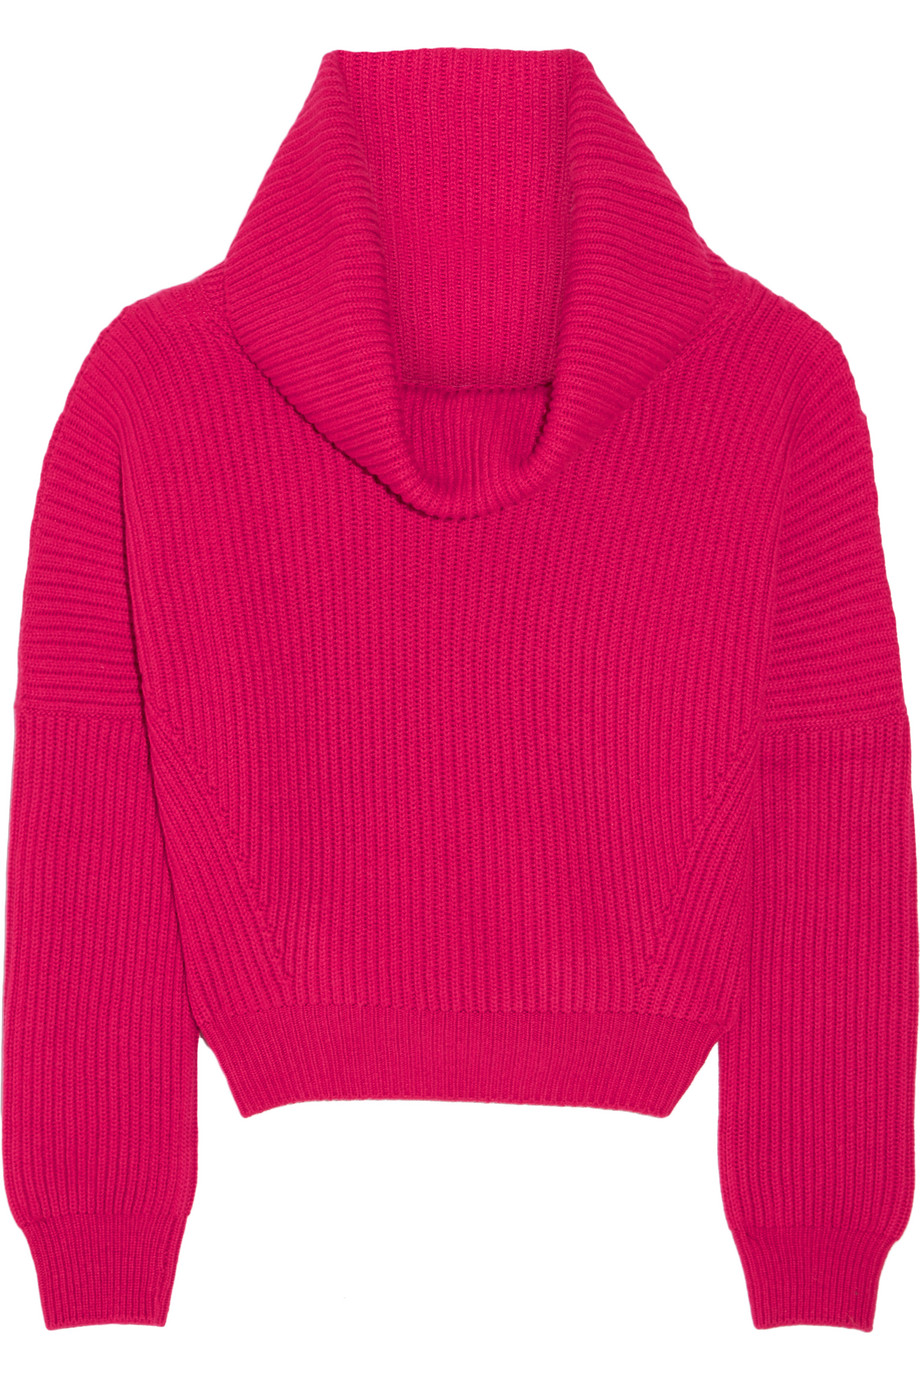 Tomas Maier Ribbed Cashmere Sweater, Fuchsia, Women's, Size: 8